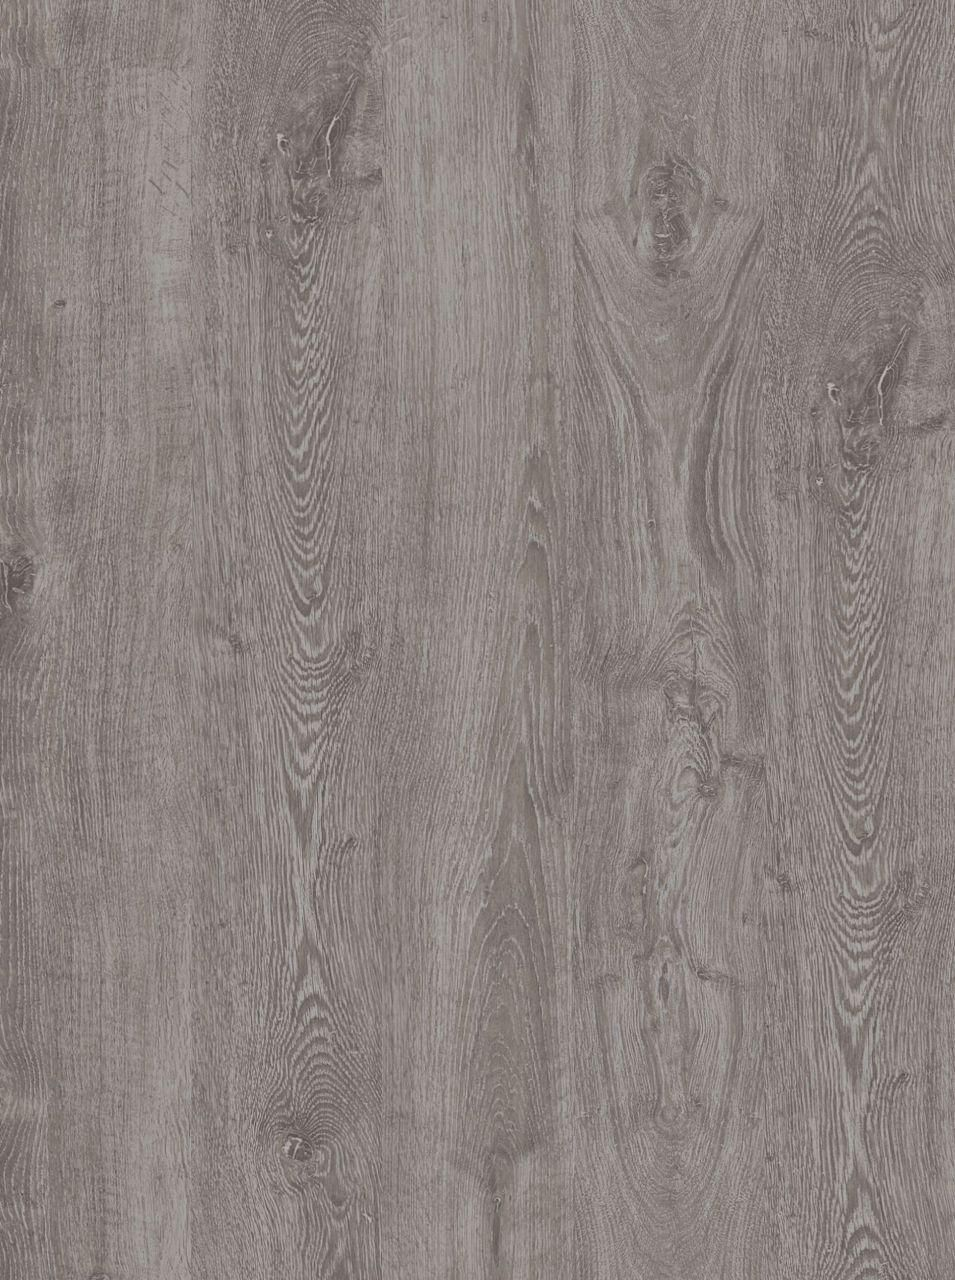 Gray Walnut Wood Texture